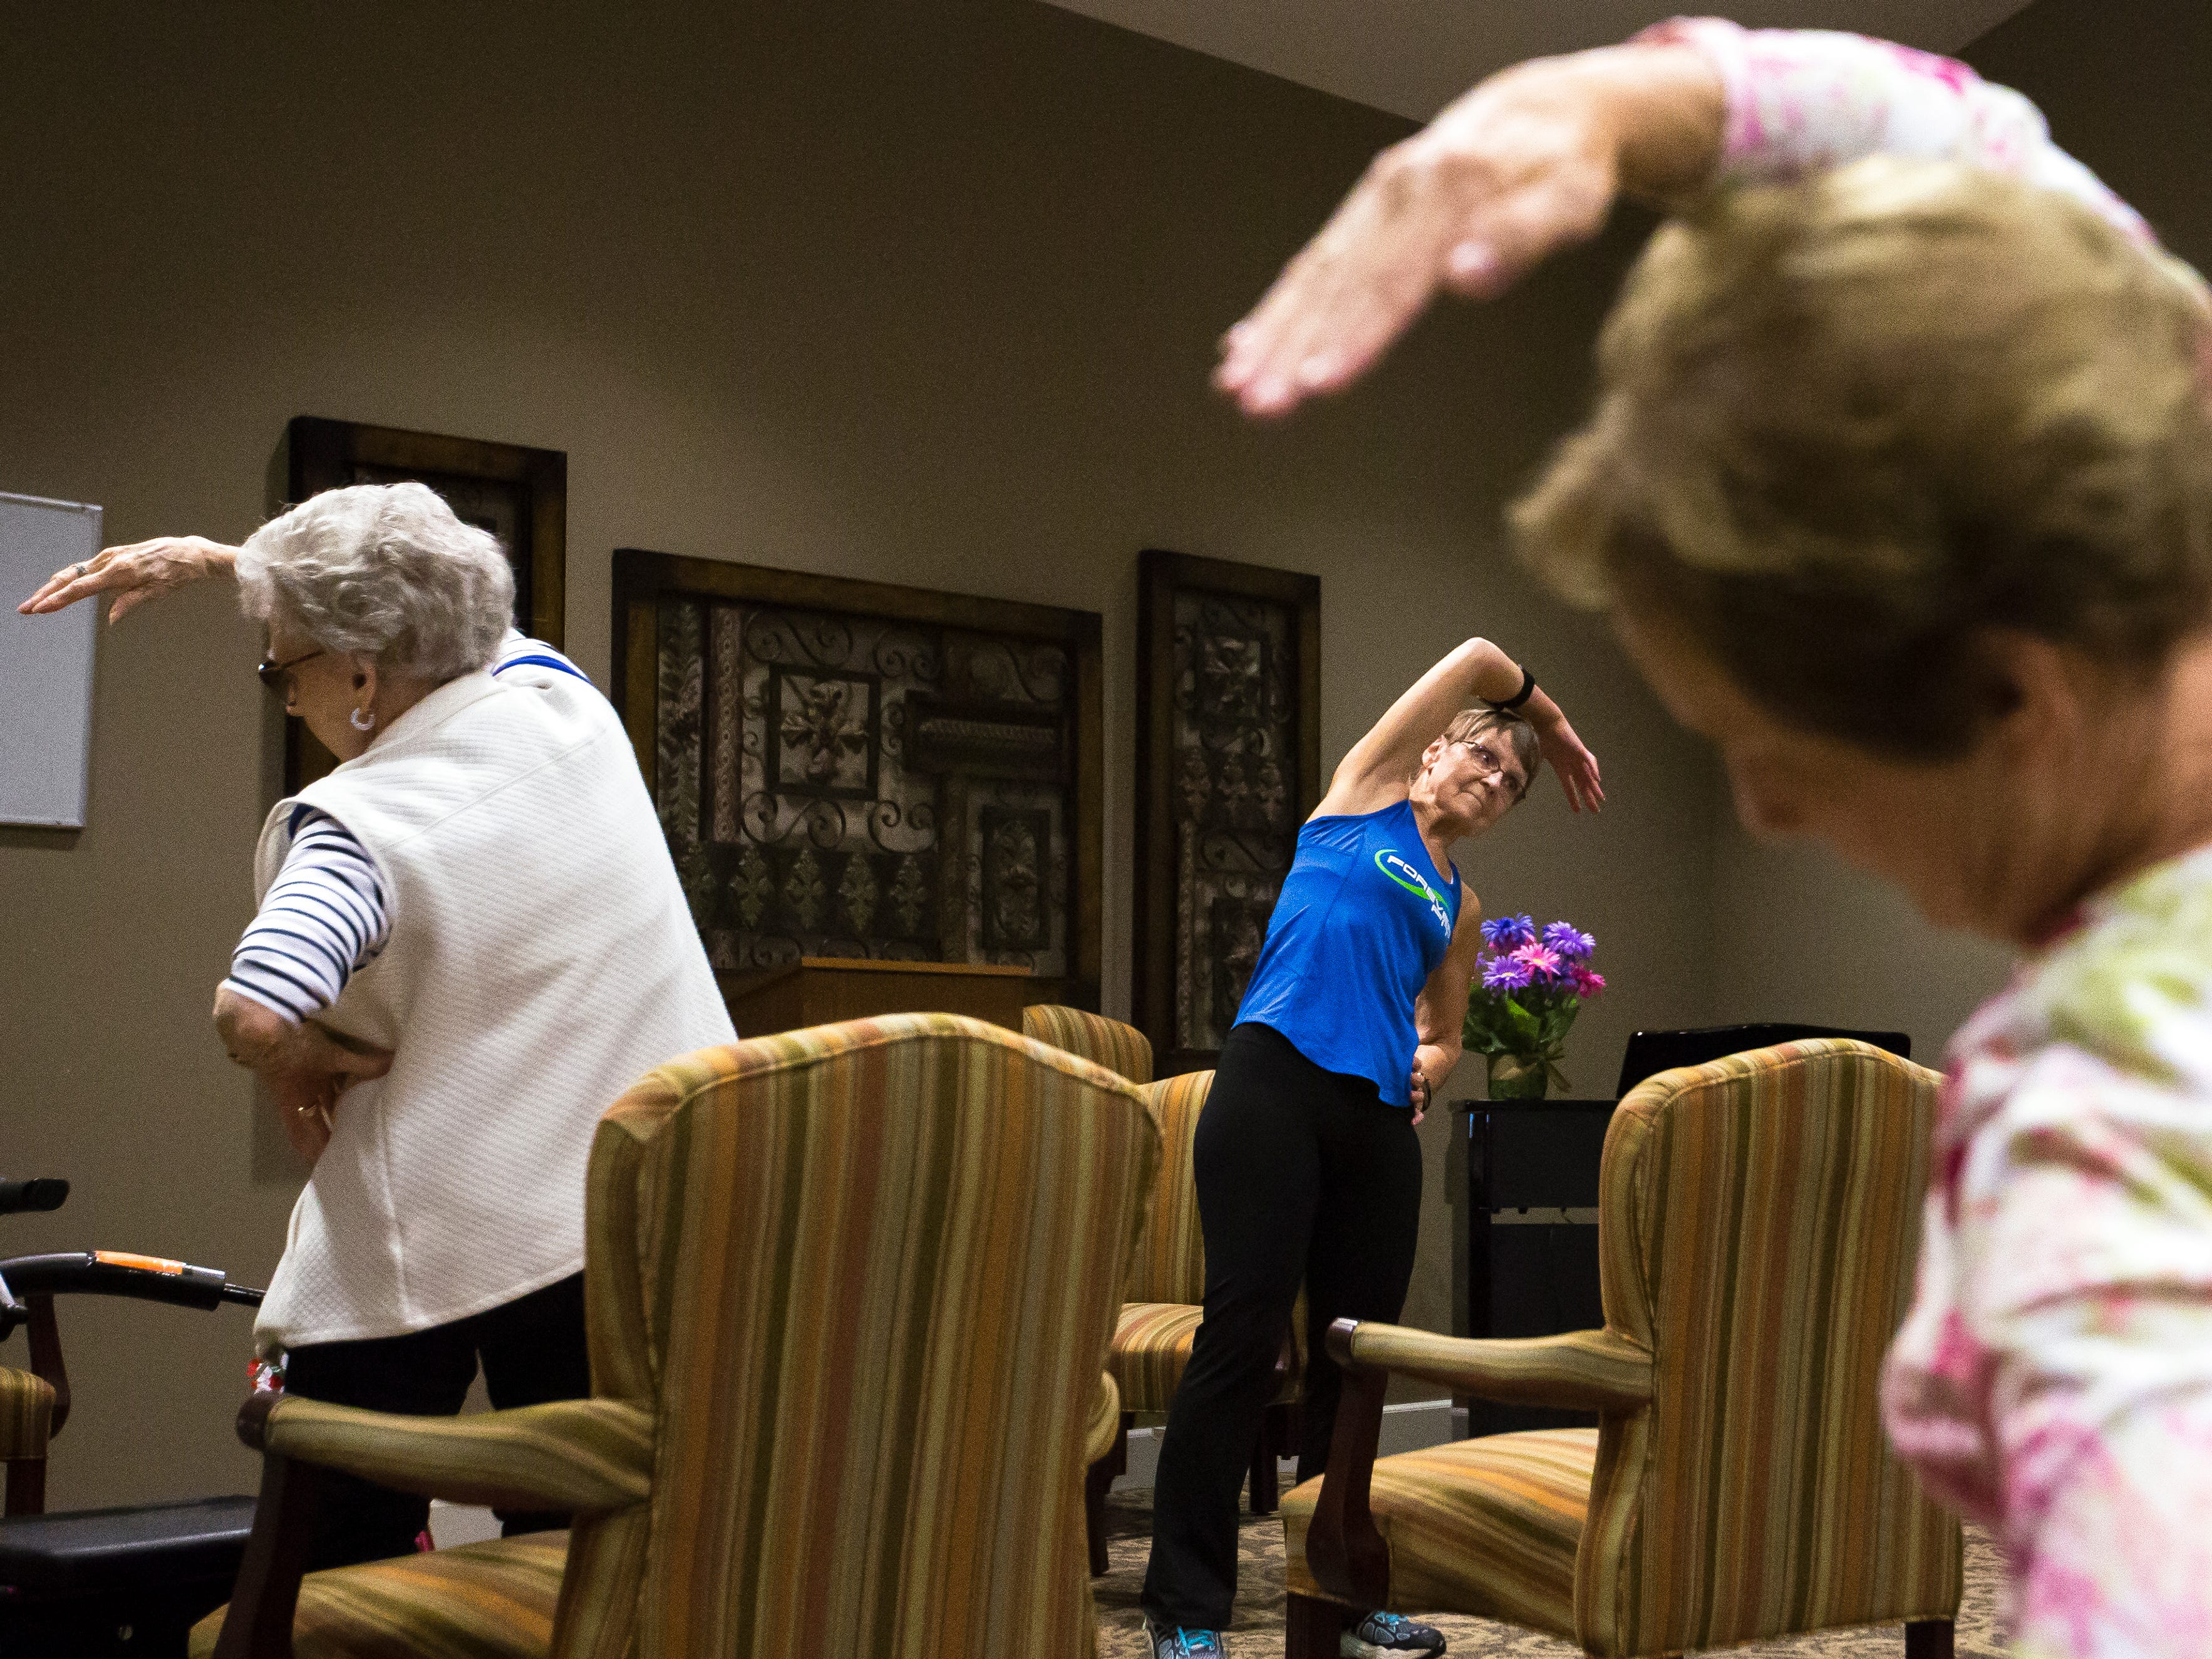 Betty Lou Sweeney trains elderly residents of the Brookdale assisted living facility in Stevens Point, Wis., Tuesday, Sept. 18, 2018. Sweeney volunteers to run the class on a weekly basis.